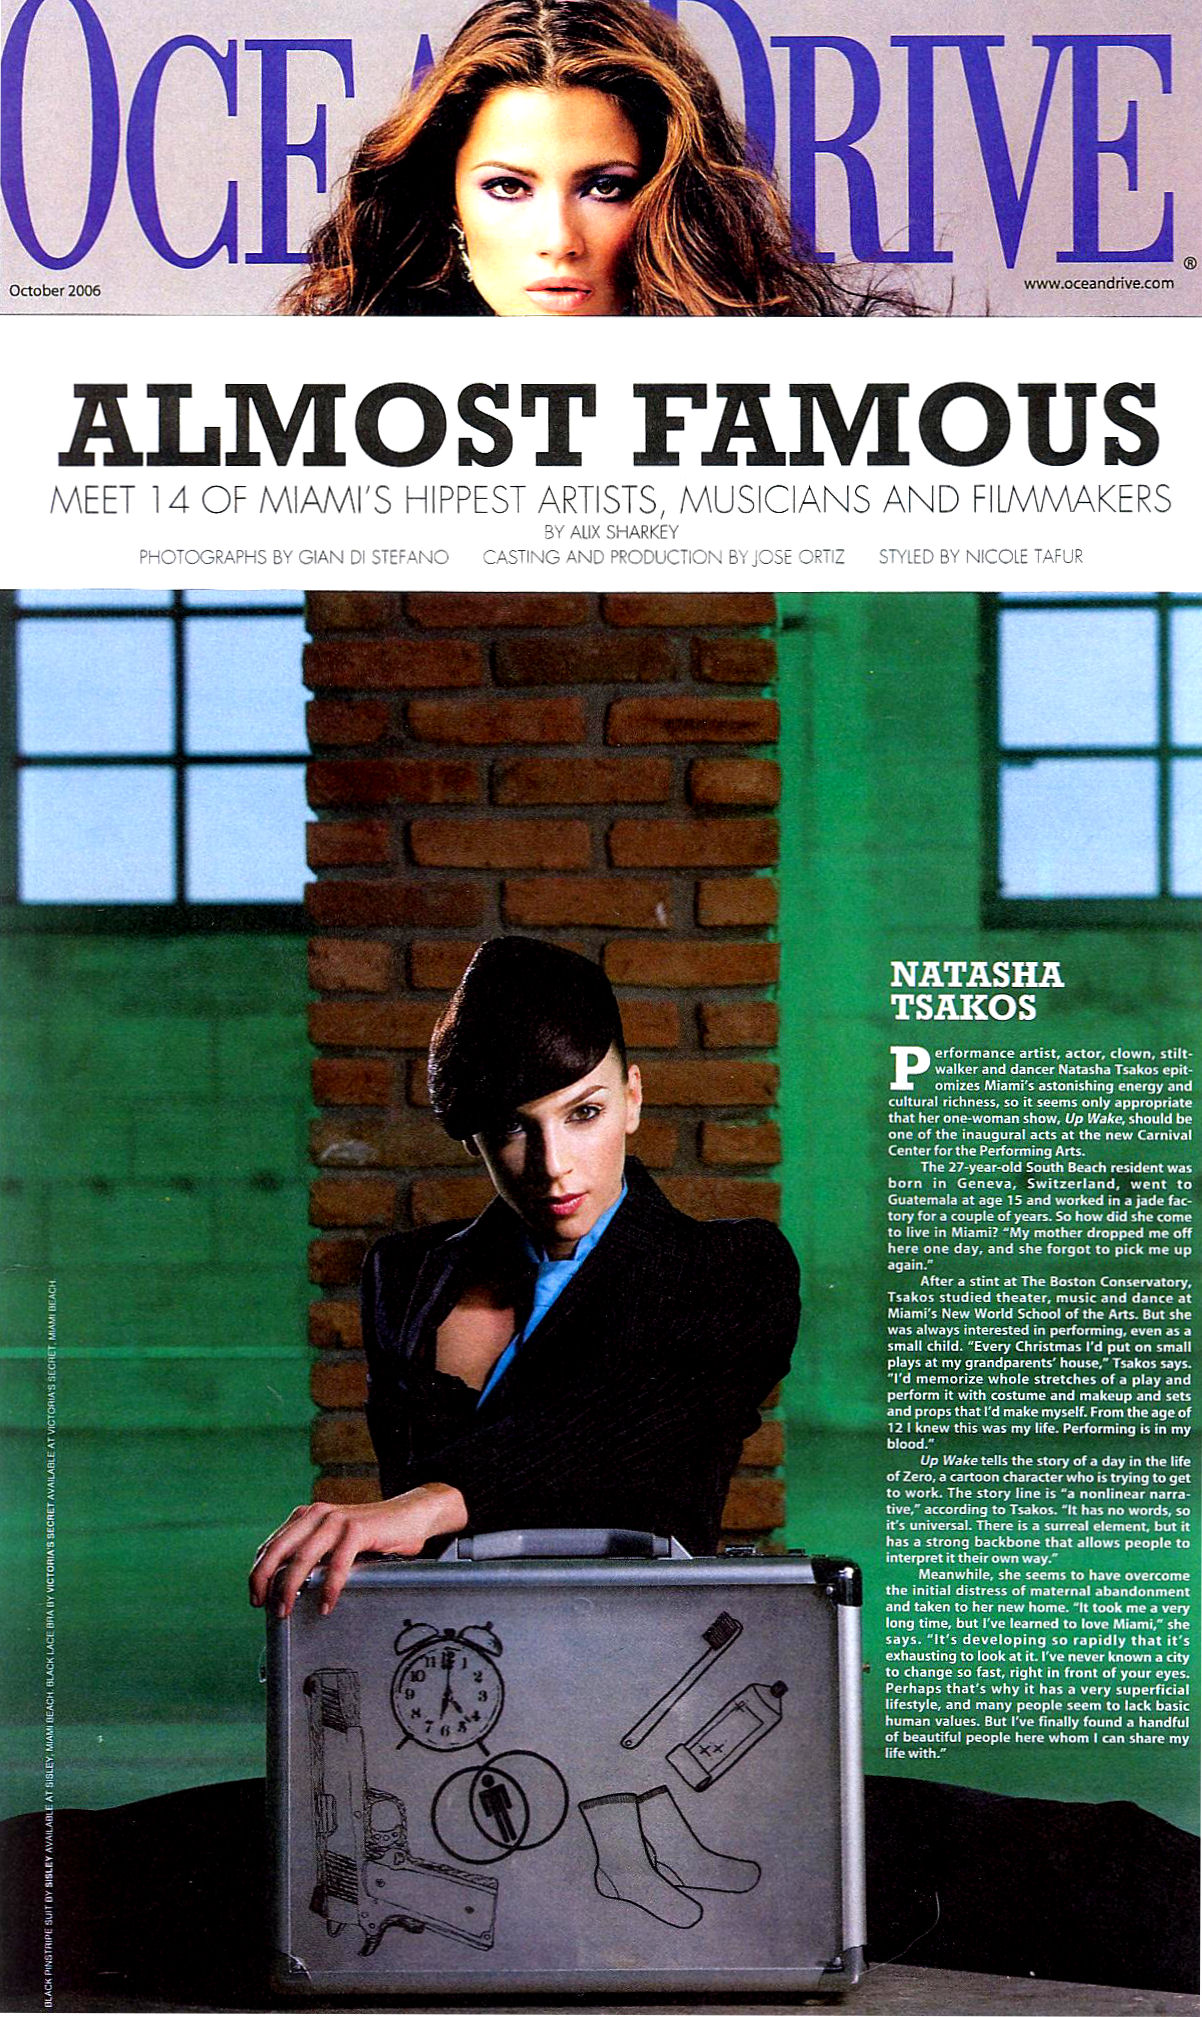 OCEAN DRIVE MAGAZINE Almost Famous